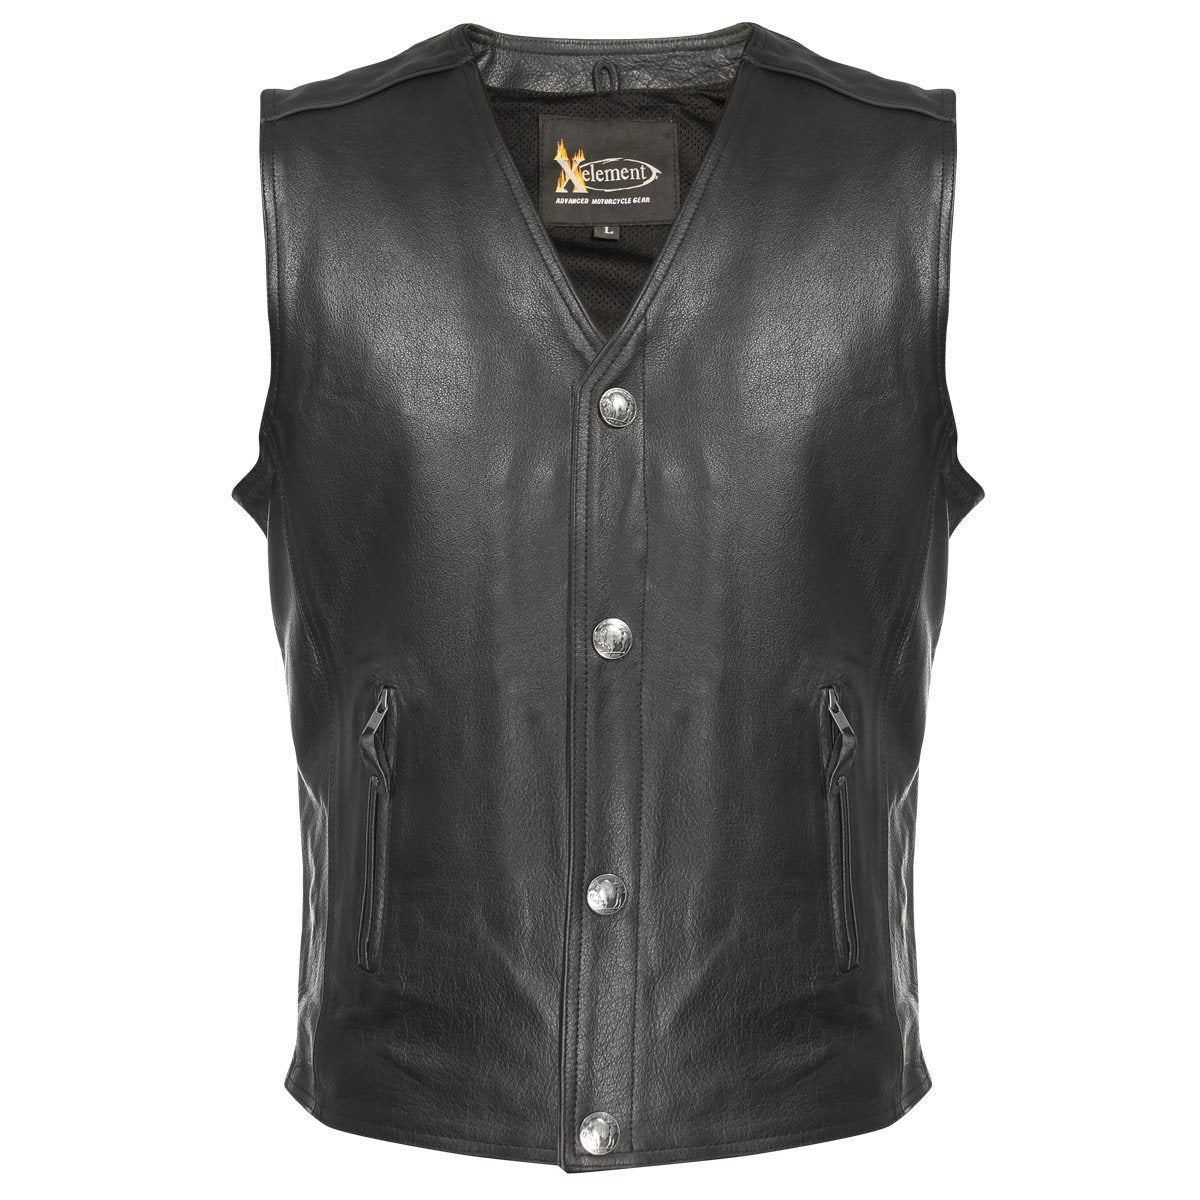 Xelement XS1378 Men's Black Gun Pocket Vest with One Panel Back